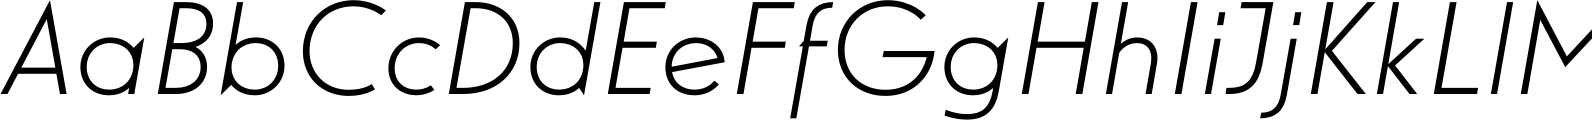 Guildford Pro Light Italic Font